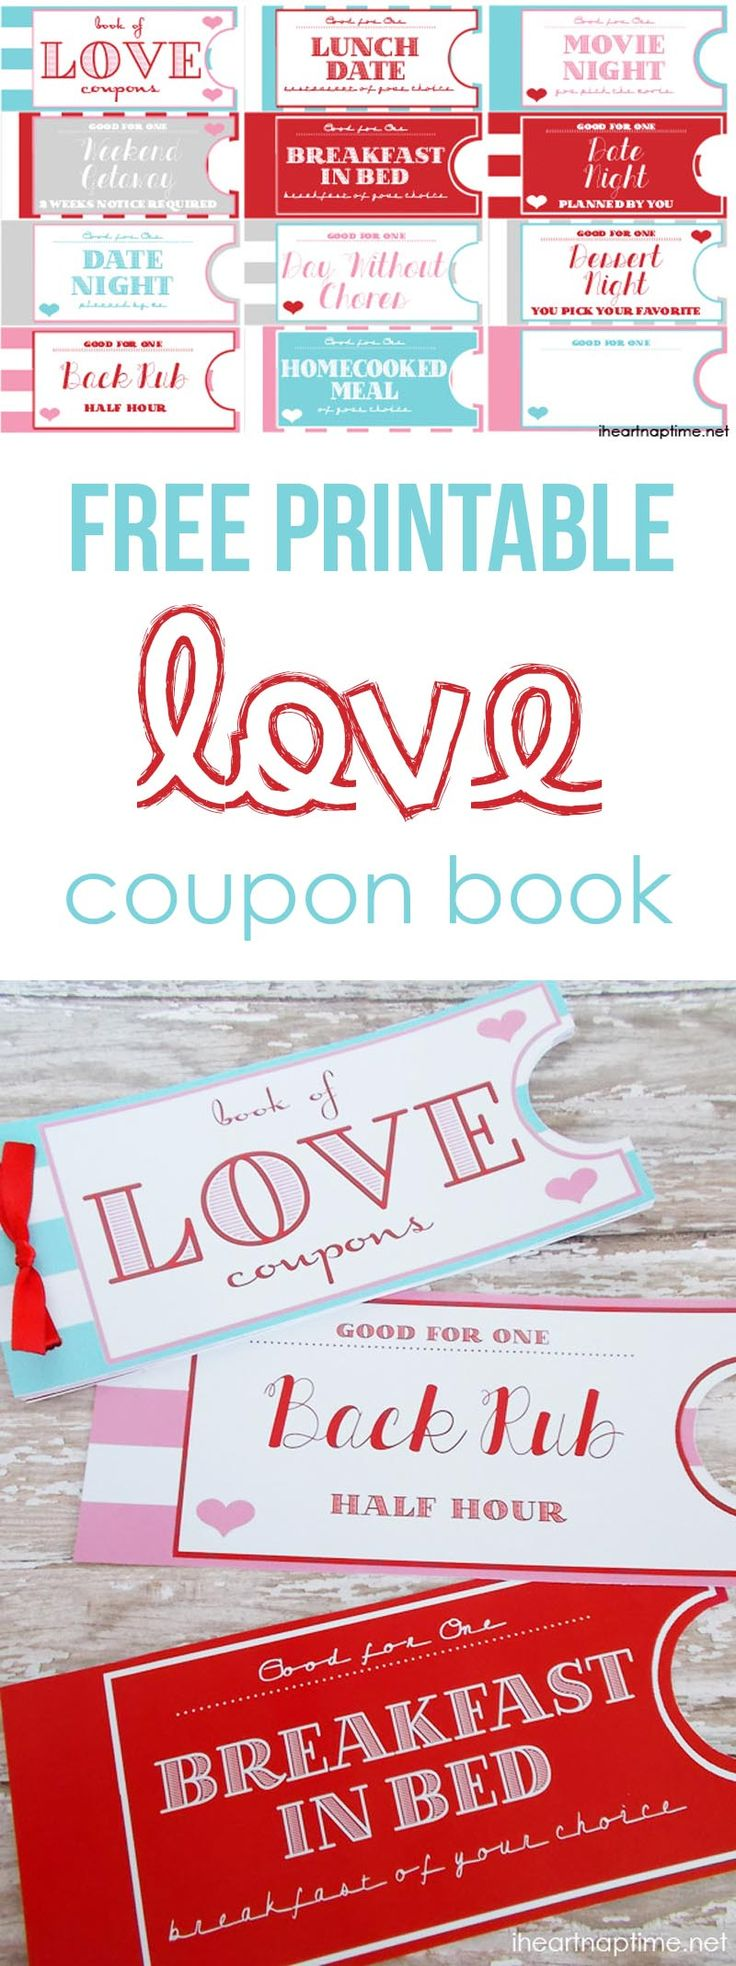 Free printable love coupon book on iheartnaptime.com ...such a fun and inexpensive idea!